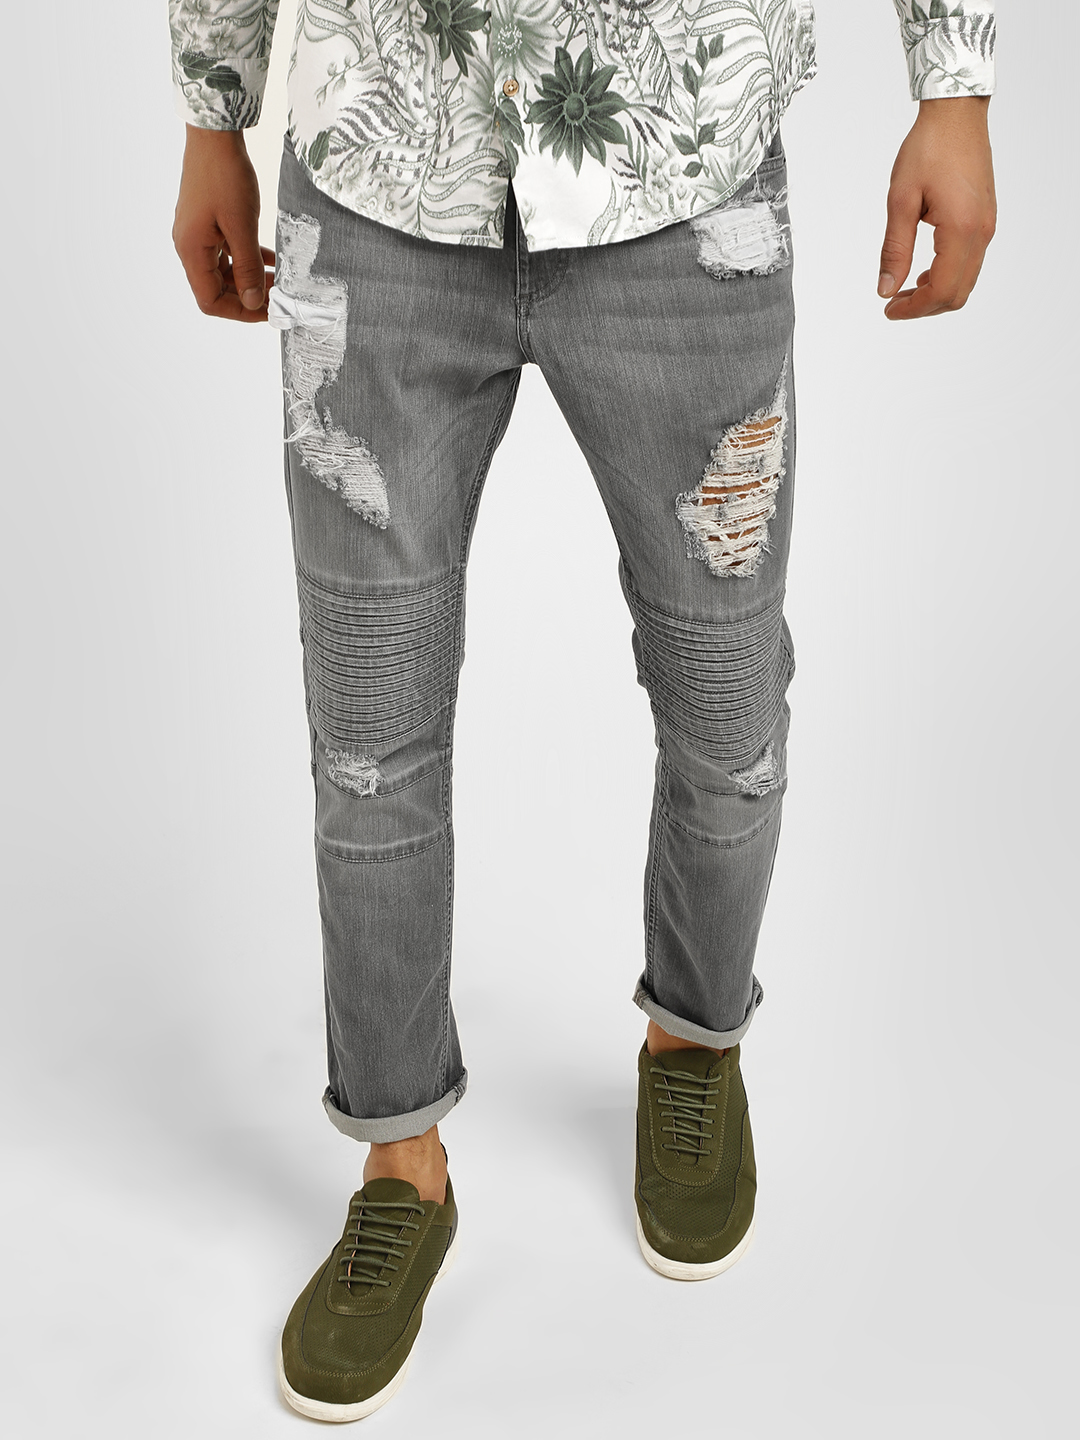 Styx & Stones Grey Biker Panel Ripped Slim Jeans 1